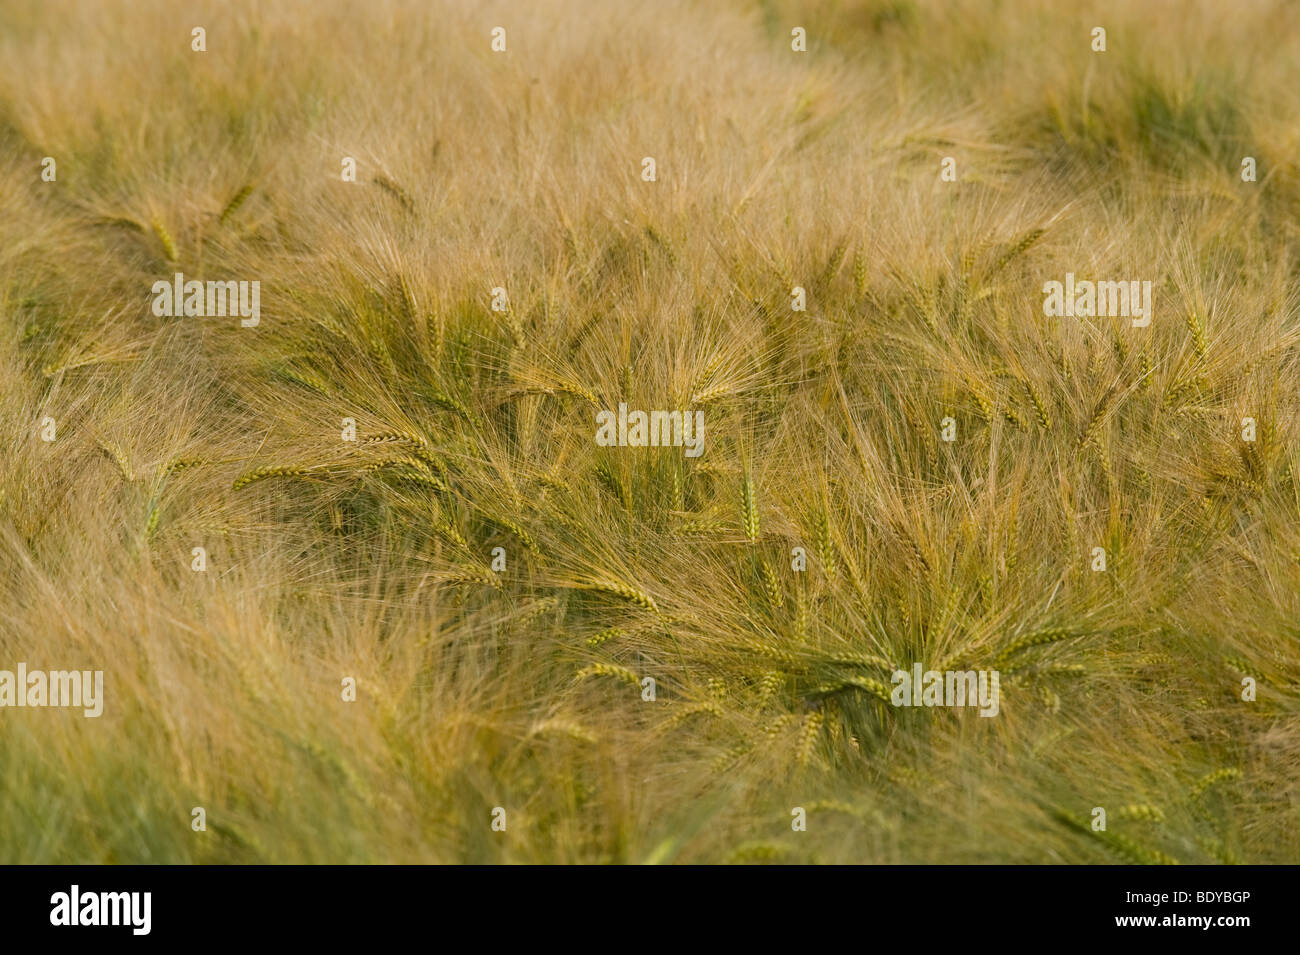 Corn field, Normandy, France, Europe - Stock Image